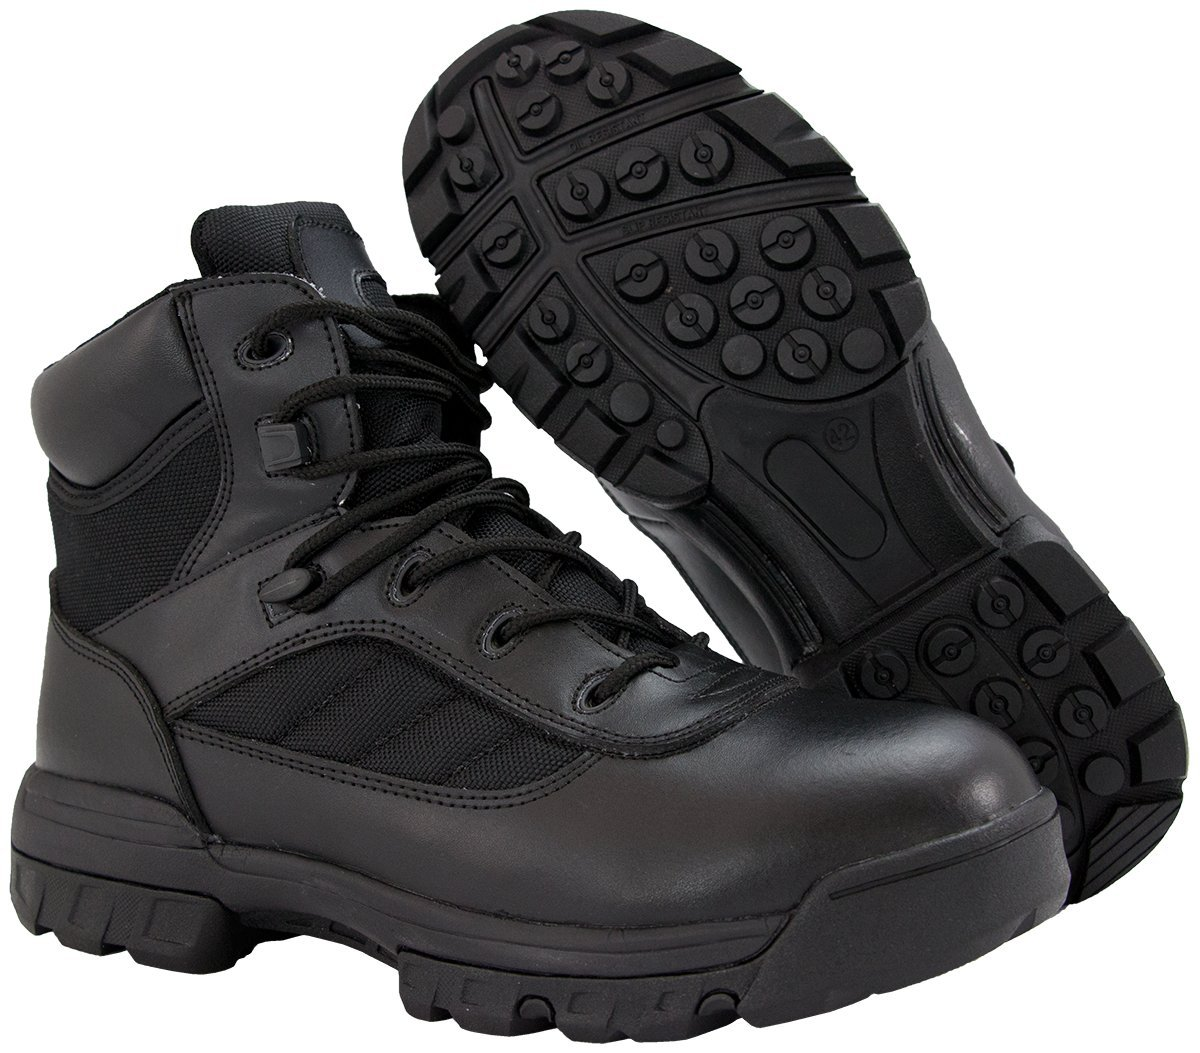 Ryno Gear Tactical Combat Boots with CoolMax Lining (Black)